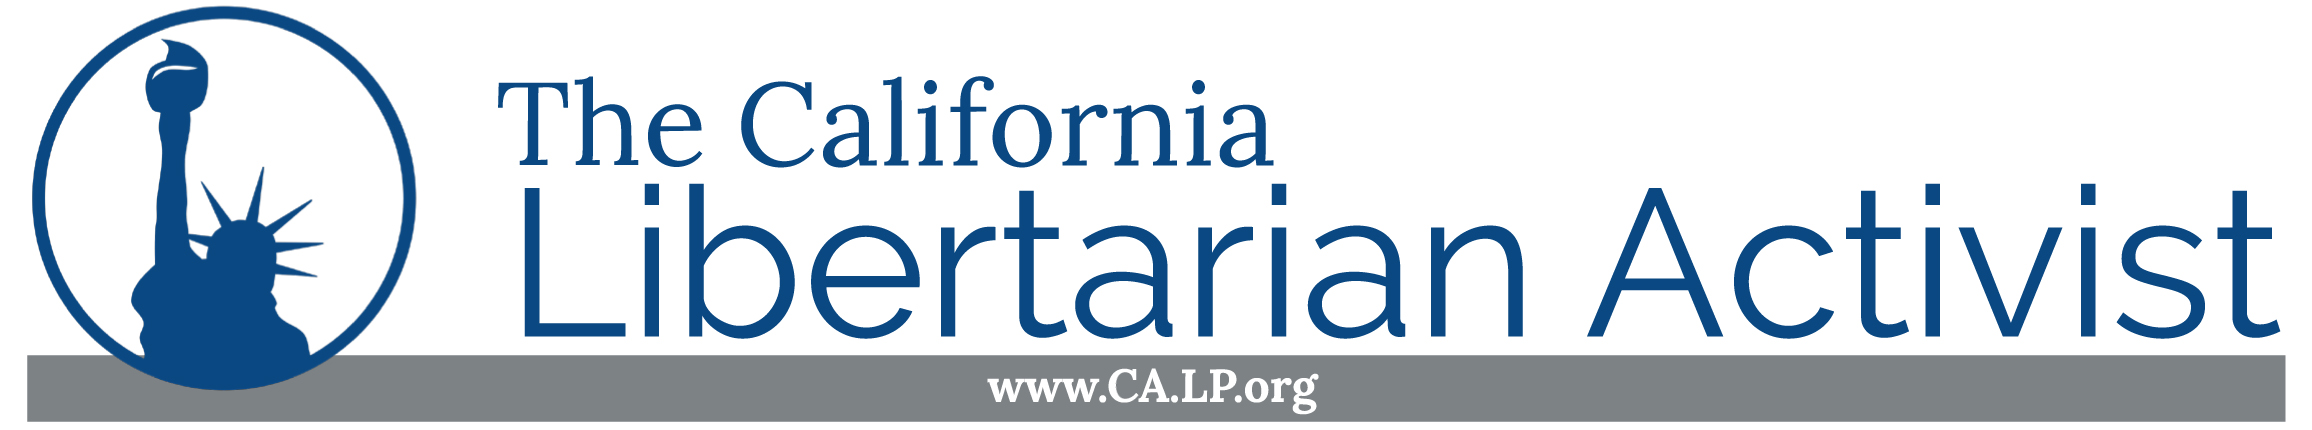 Masthead image - with text, The California Libertarian Activist, the official newsletter for activists of the Libertarian Party of California, text www.Ca.LP.org, blue and grey with stylized Lady Liberty silhouette